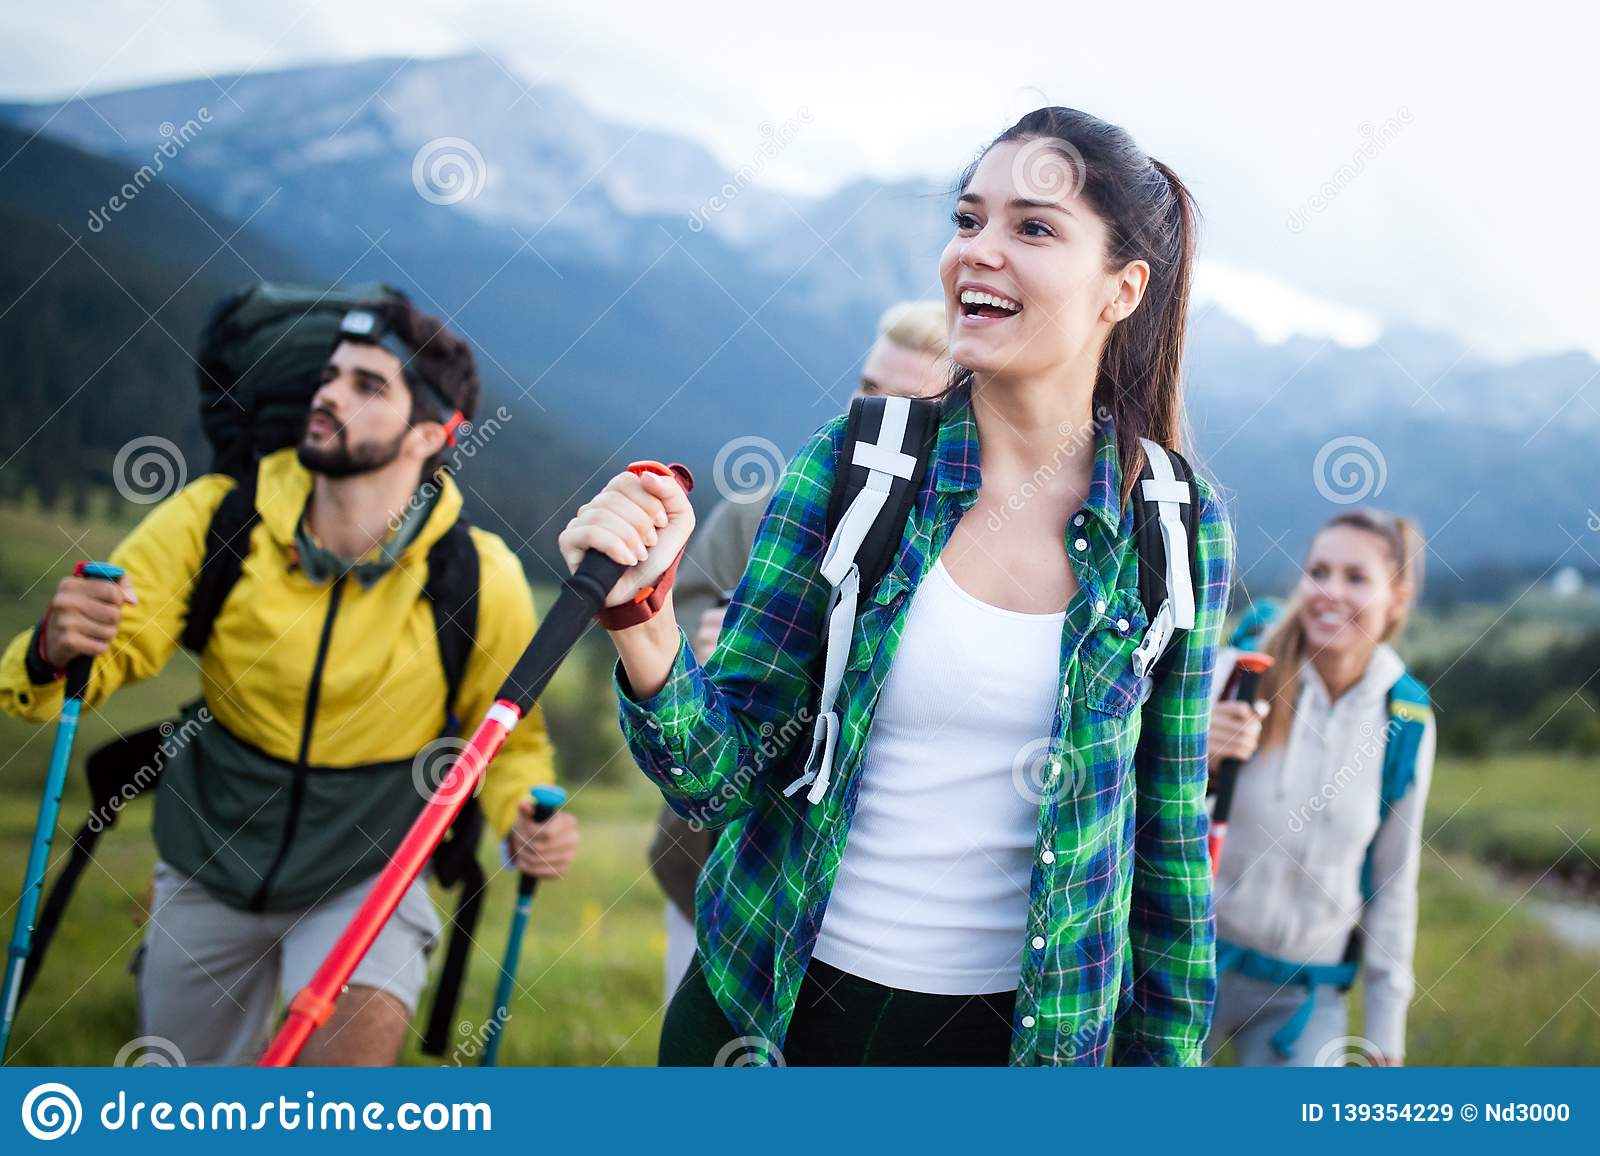 Travel, tourism, hike, gesture and people concept - group of smiling friends with backpacks